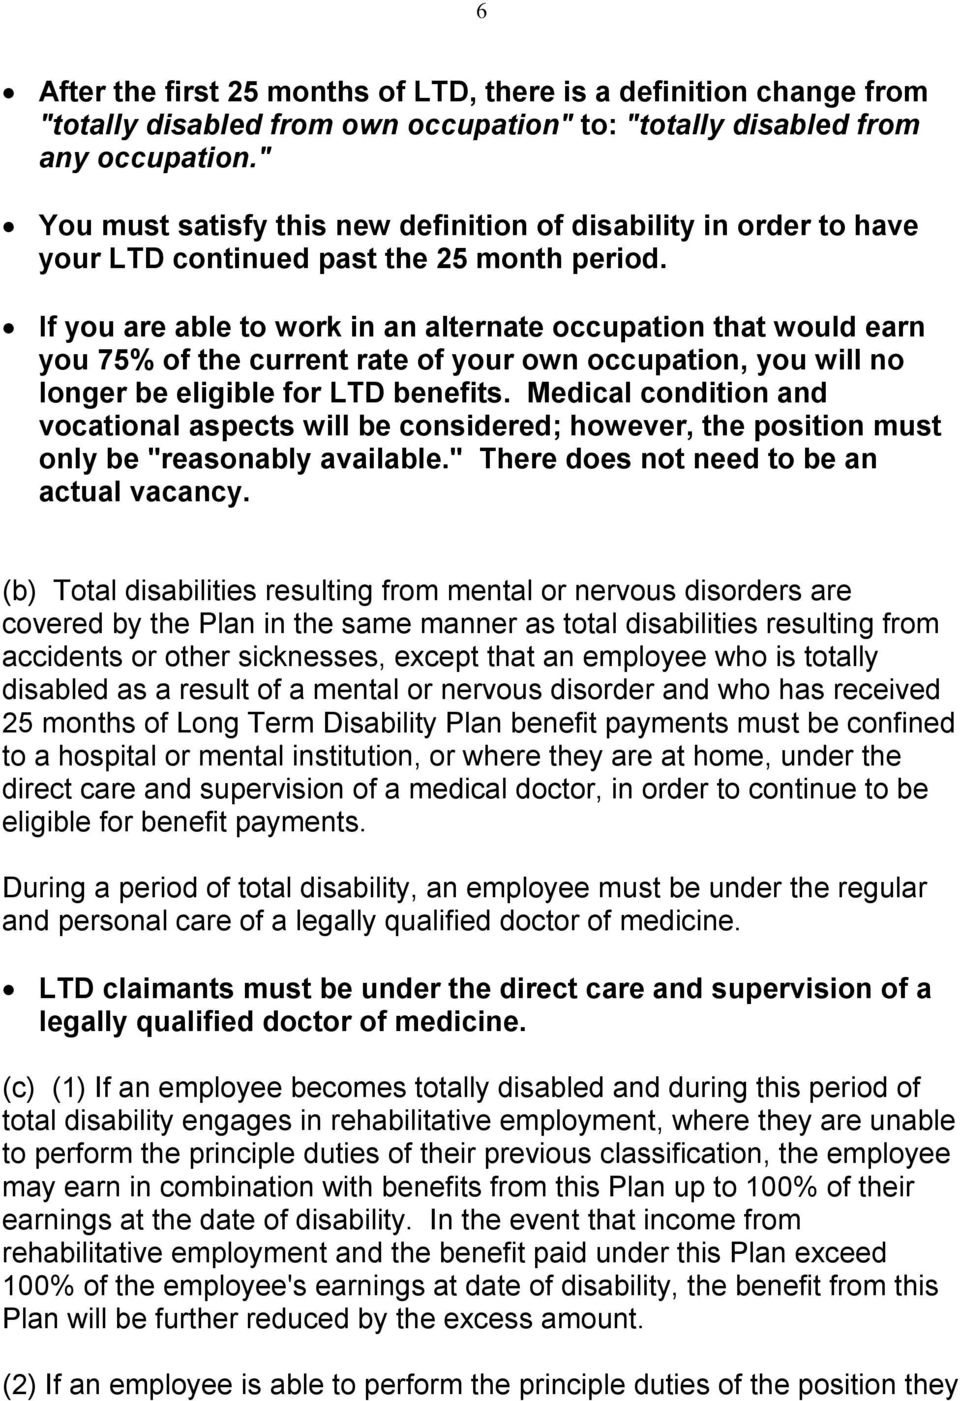 If you are able to work in an alternate occupation that would earn you 75% of the current rate of your own occupation, you will no longer be eligible for LTD benefits.